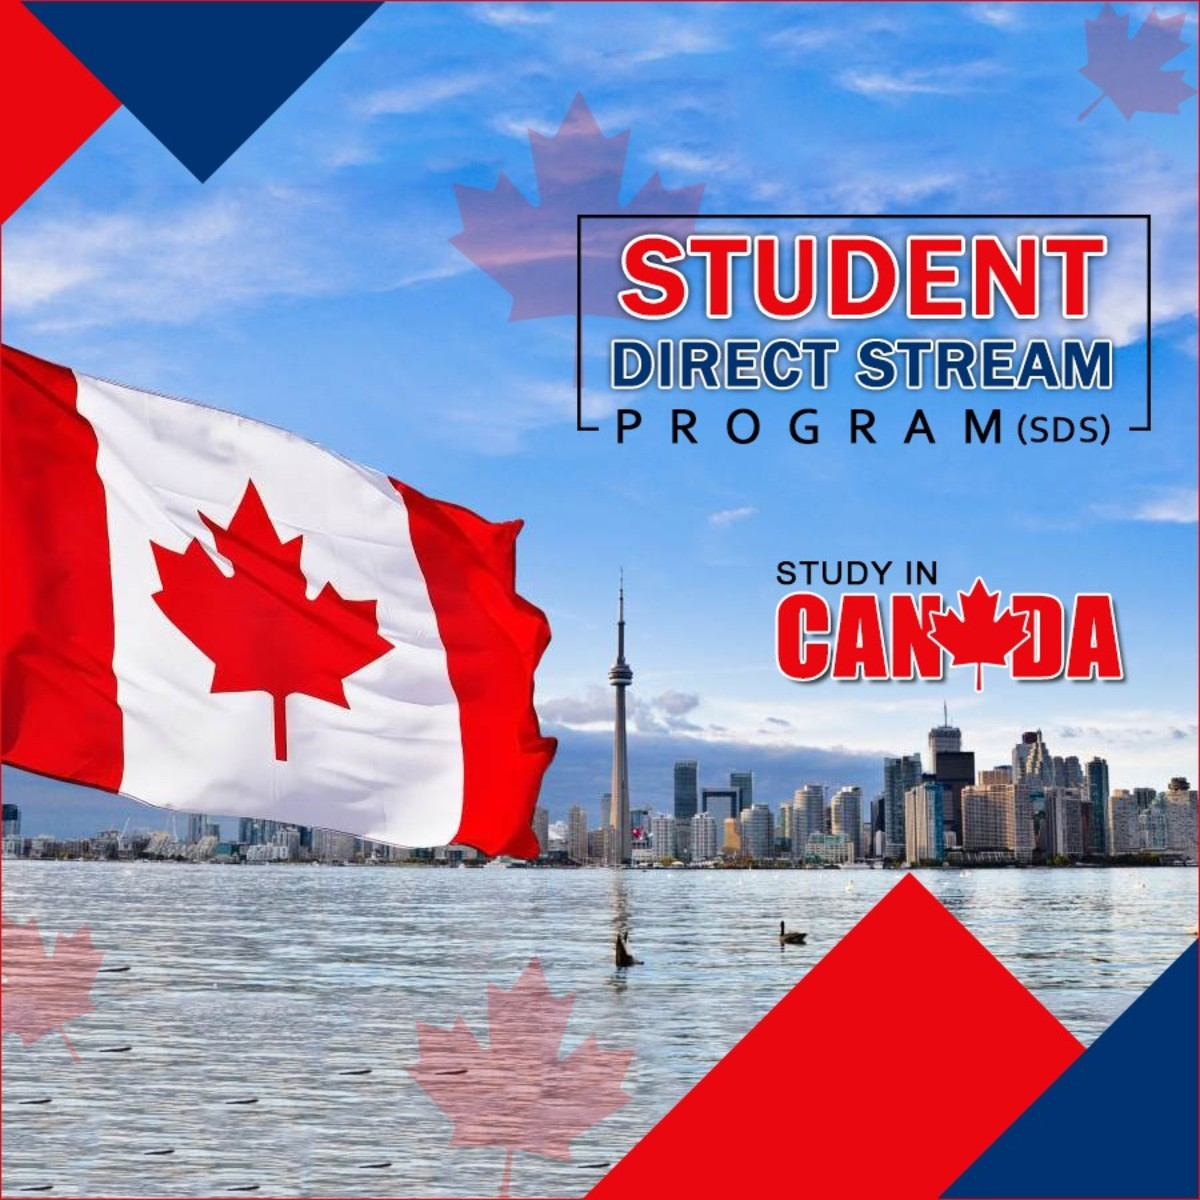 CANADA Study Visa for Indian Students: Changes in Rules from SPP to SDS